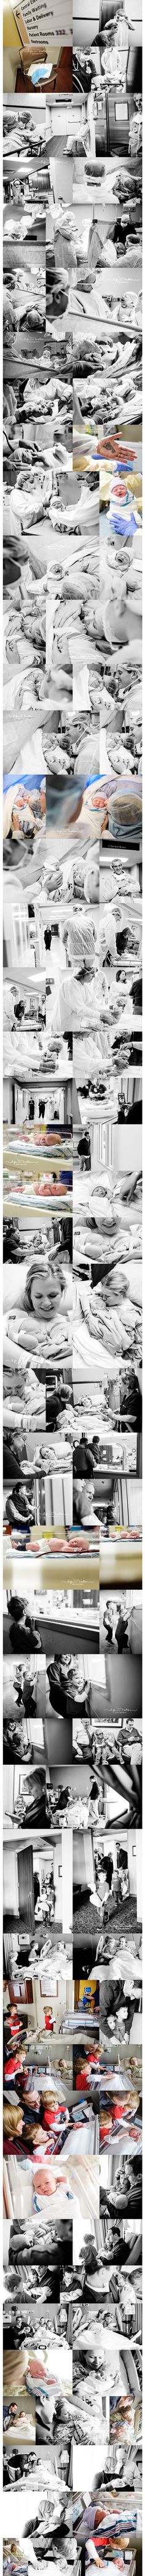 C-Section Birth Photography by Lyndsay Stradtner